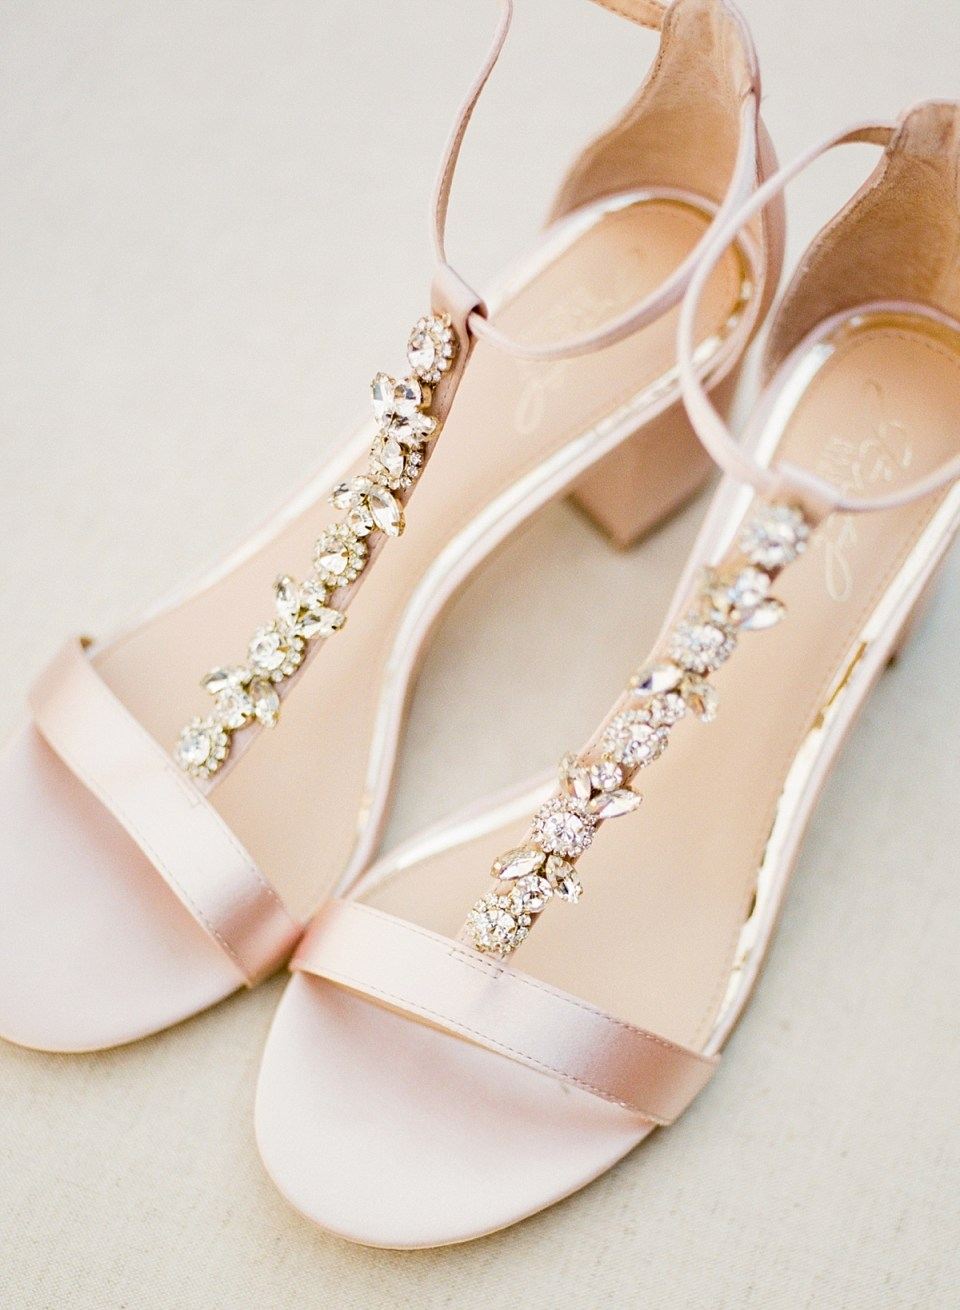 Villa Siena Wedding, Villa Siena Gilbert, Arizona Blush Wedding, Villa Siena Wedding Photographer, Phoenix Wedding Photographer, AZWED, Blush Wedding Shoes